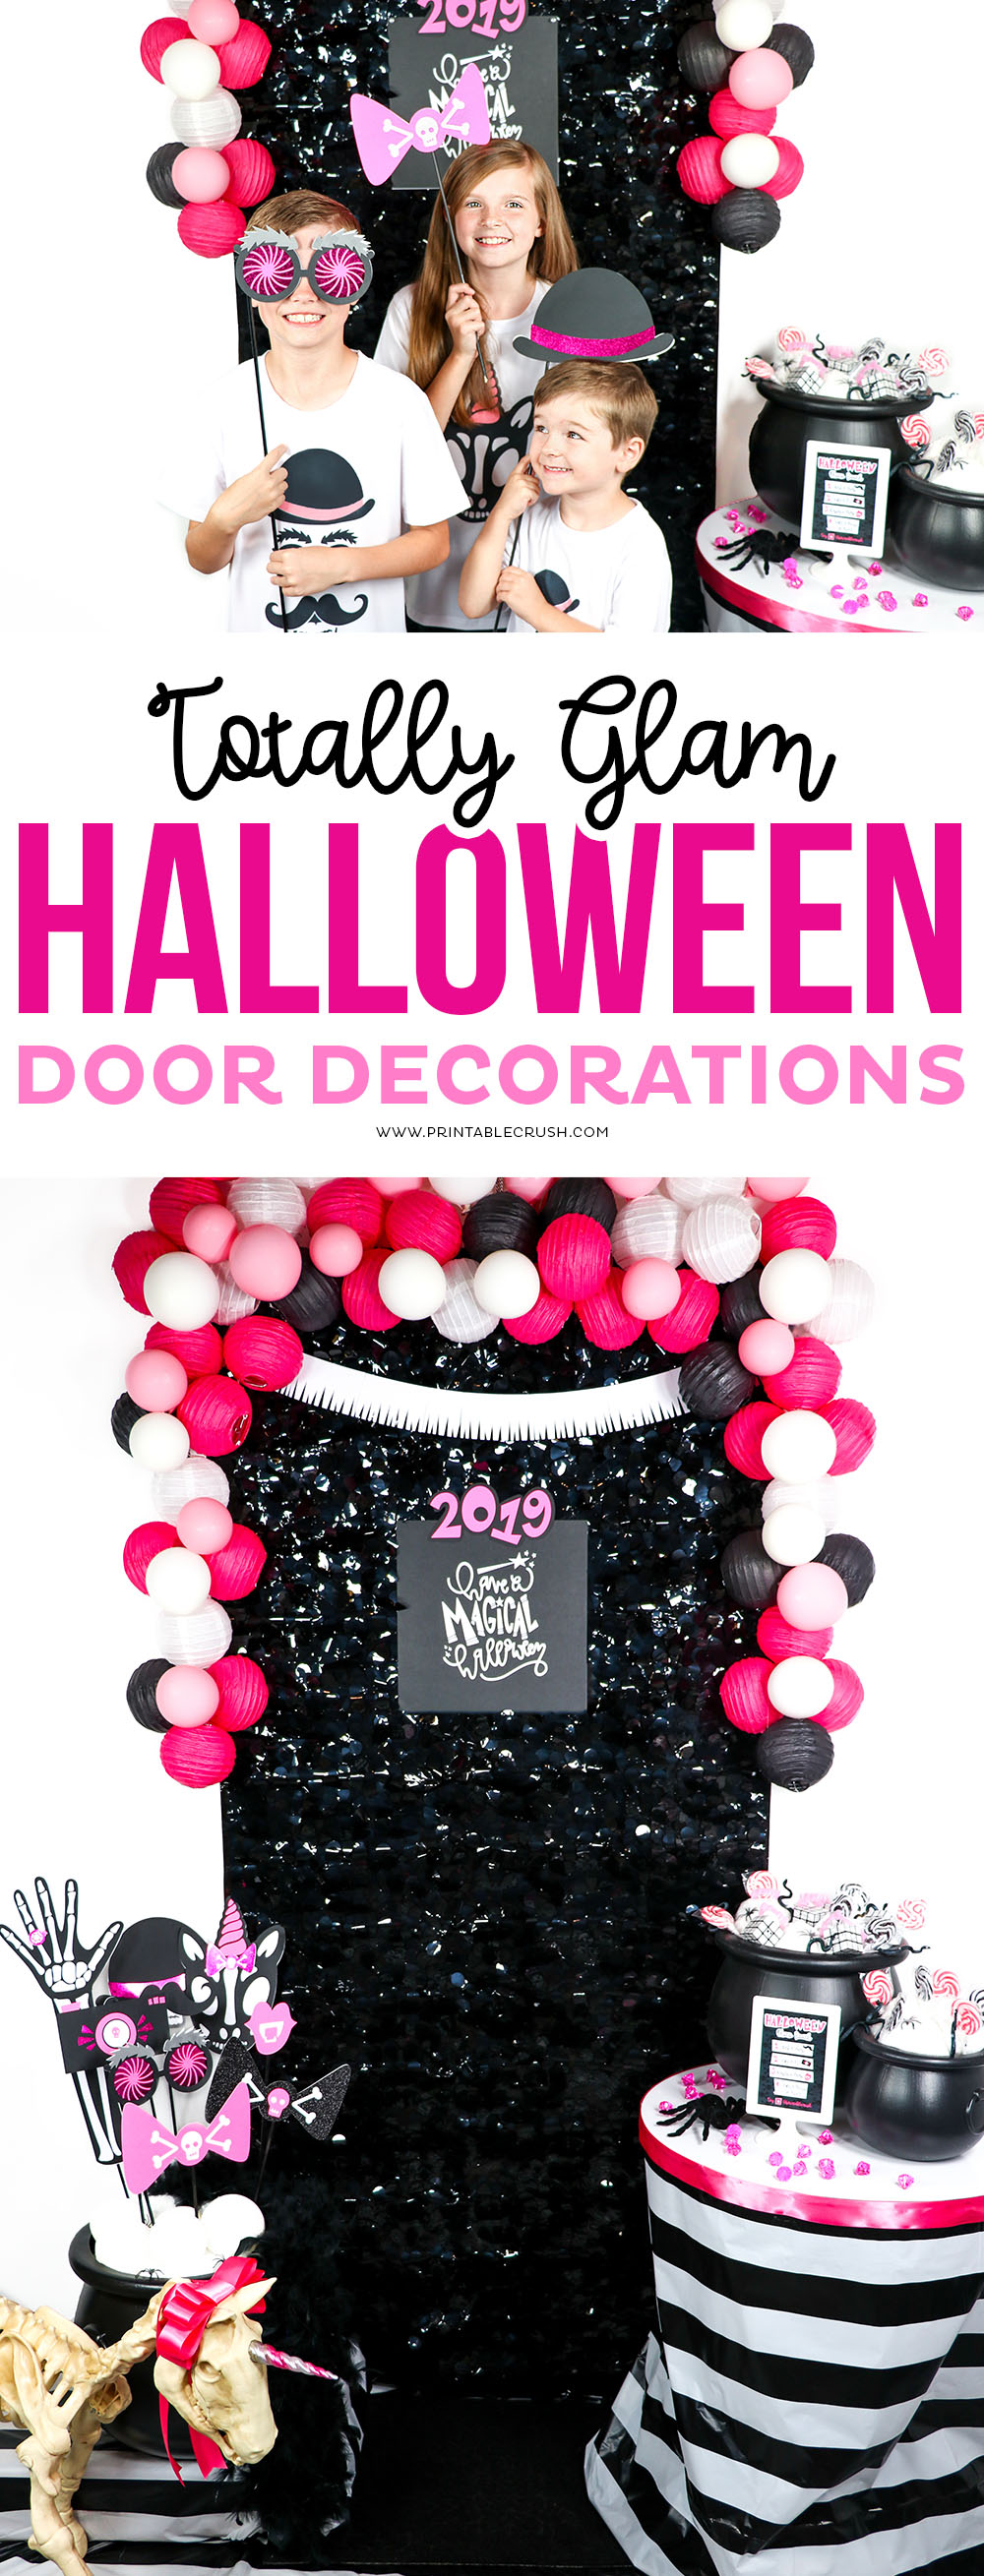 Pink Black and White Halloween Door Decorations